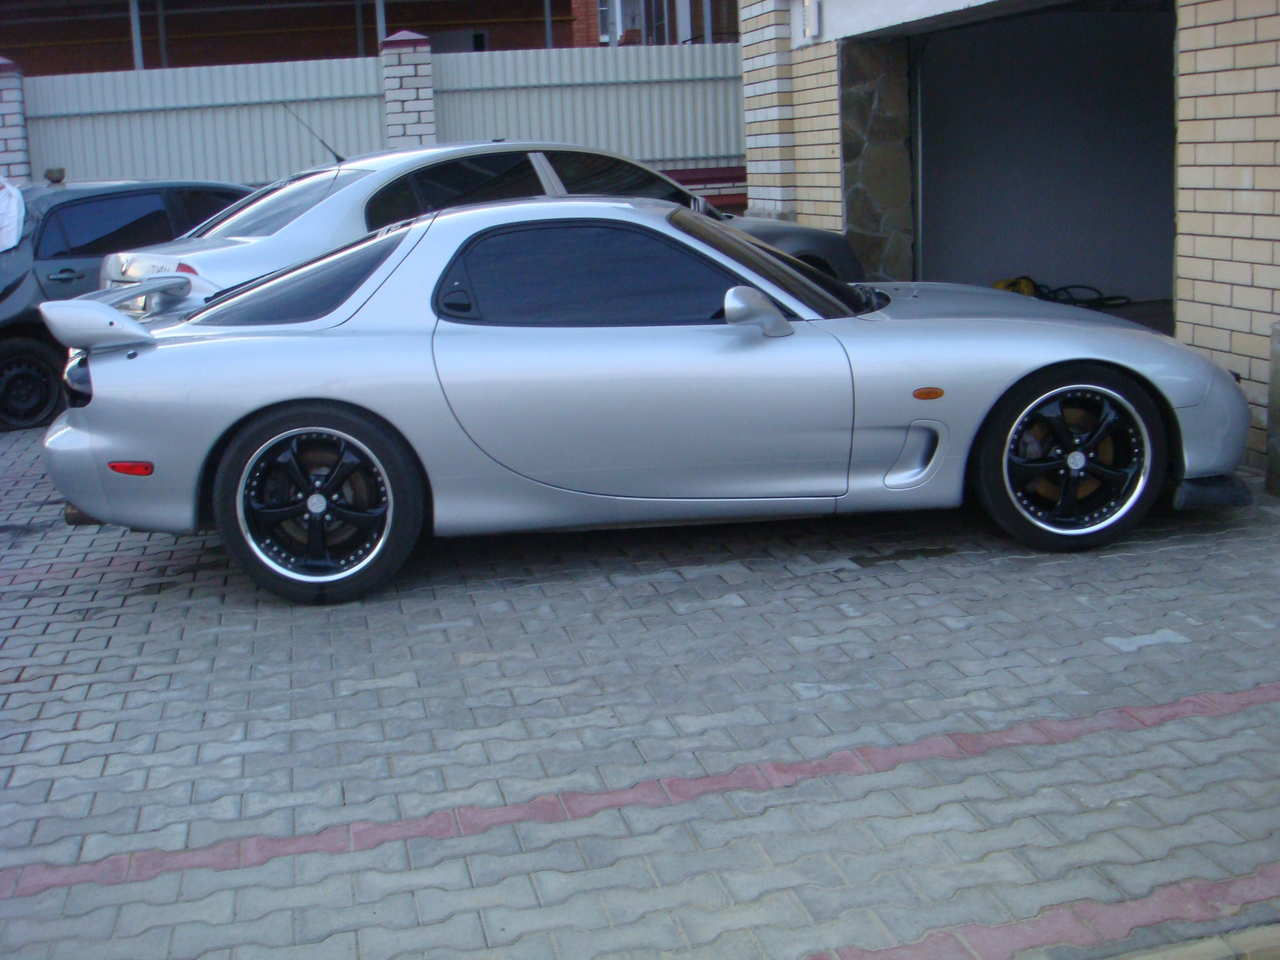 2002 Mazda RX7 Pictures 13l Gasoline FR or RR Manual For Sale